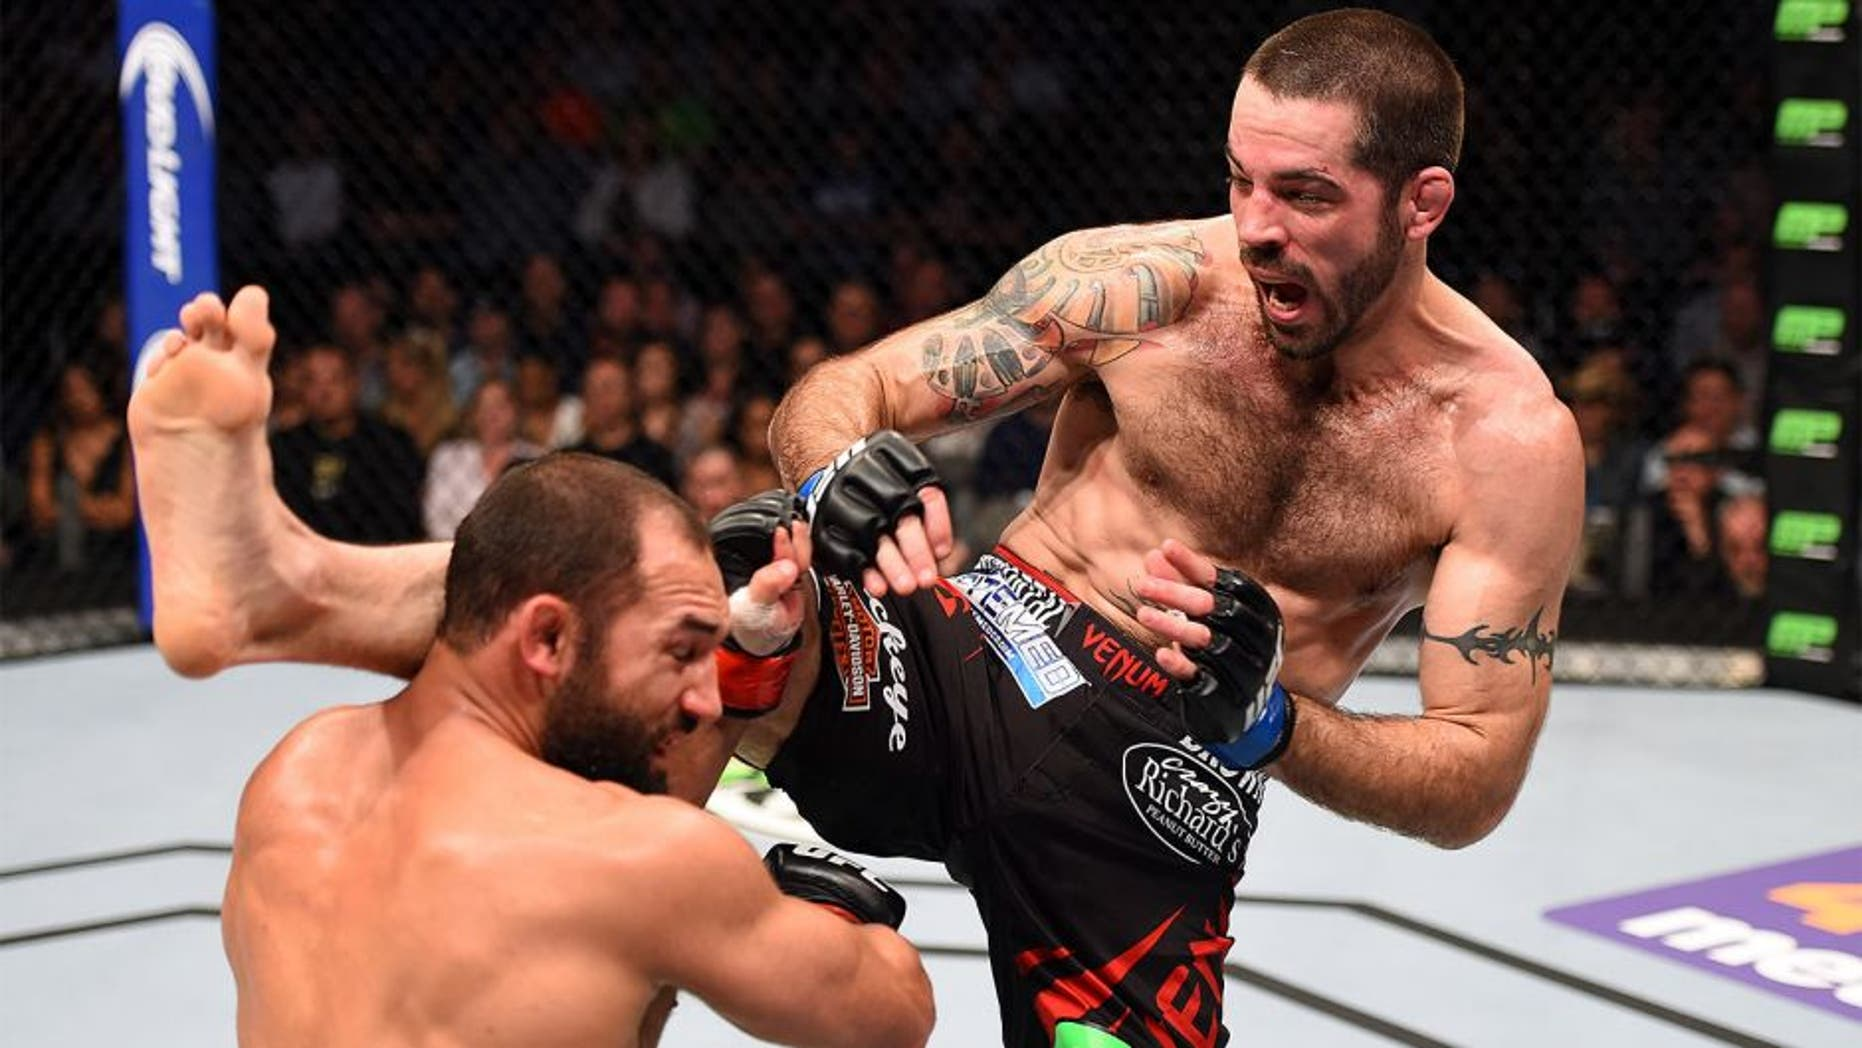 DALLAS, TX - MARCH 14: (R-L) Matt Brown kicks Johny Hendricks in their welterweight bout during the UFC 185 event at the American Airlines Center on March 14, 2015 in Dallas, Texas. (Photo by Josh Hedges/Zuffa LLC/Zuffa LLC via Getty Images)